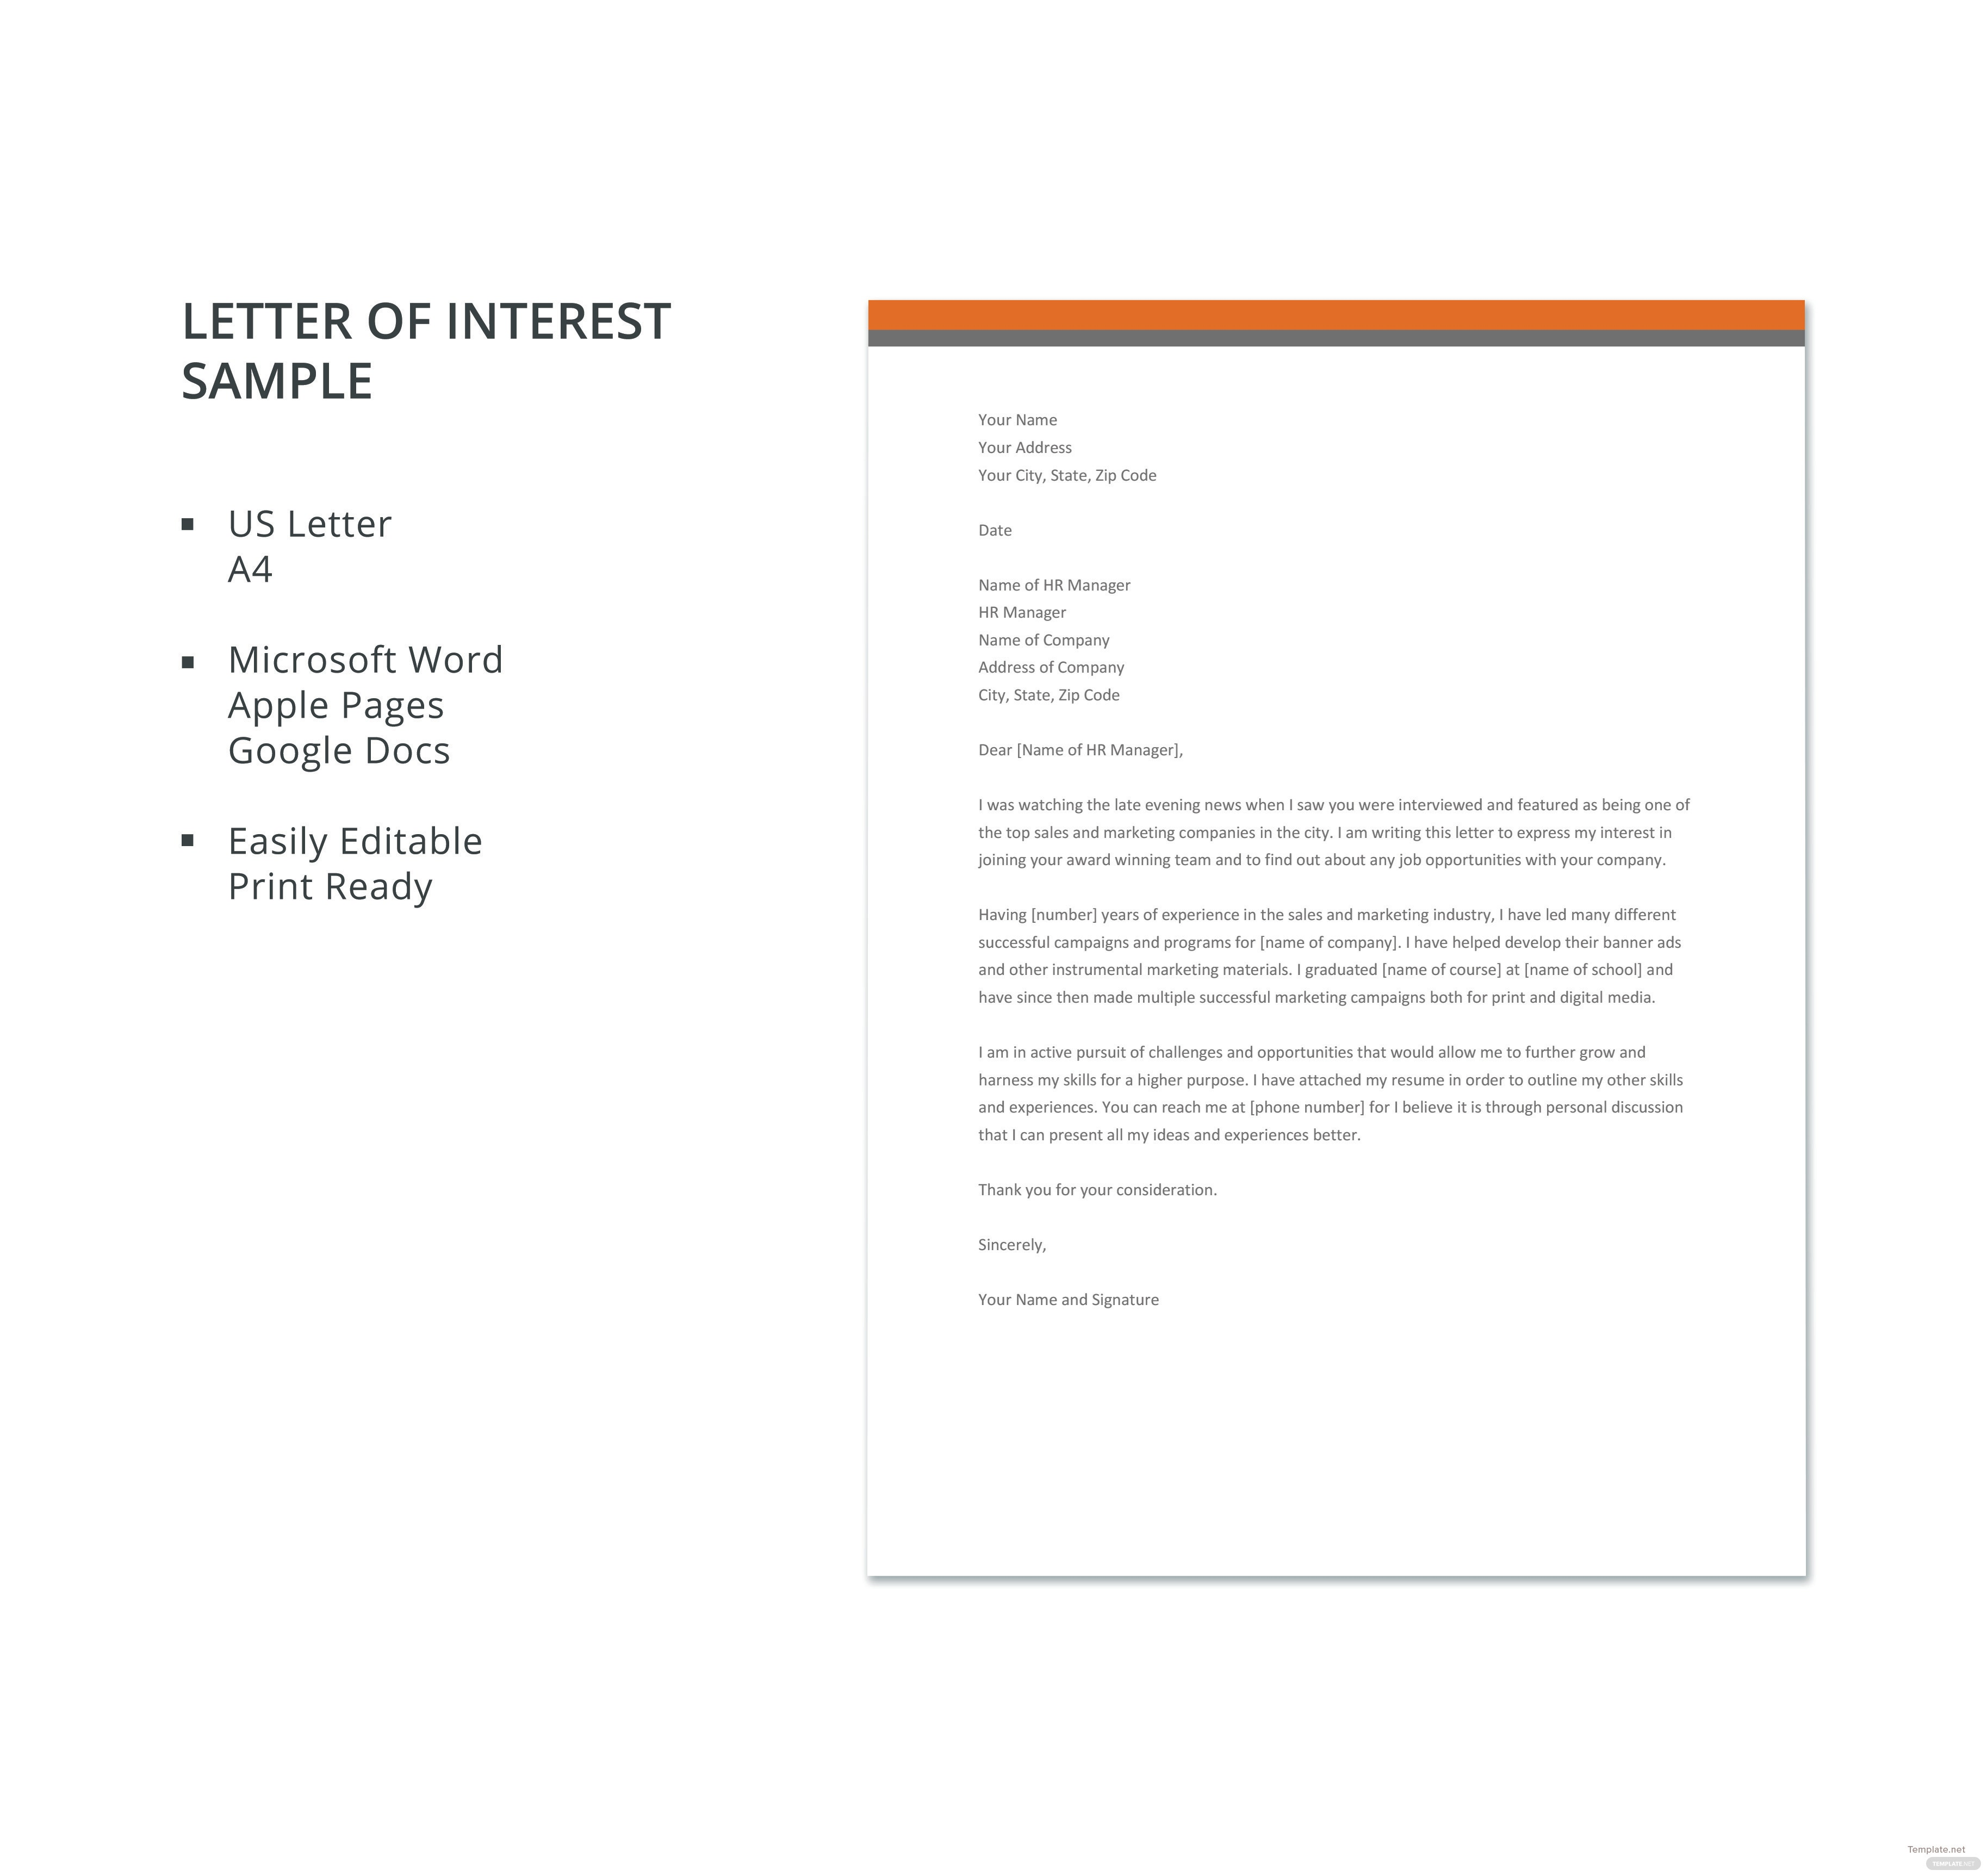 Letter of interest sample template in microsoft word apple pages click to see full template letter of interest sample spiritdancerdesigns Choice Image